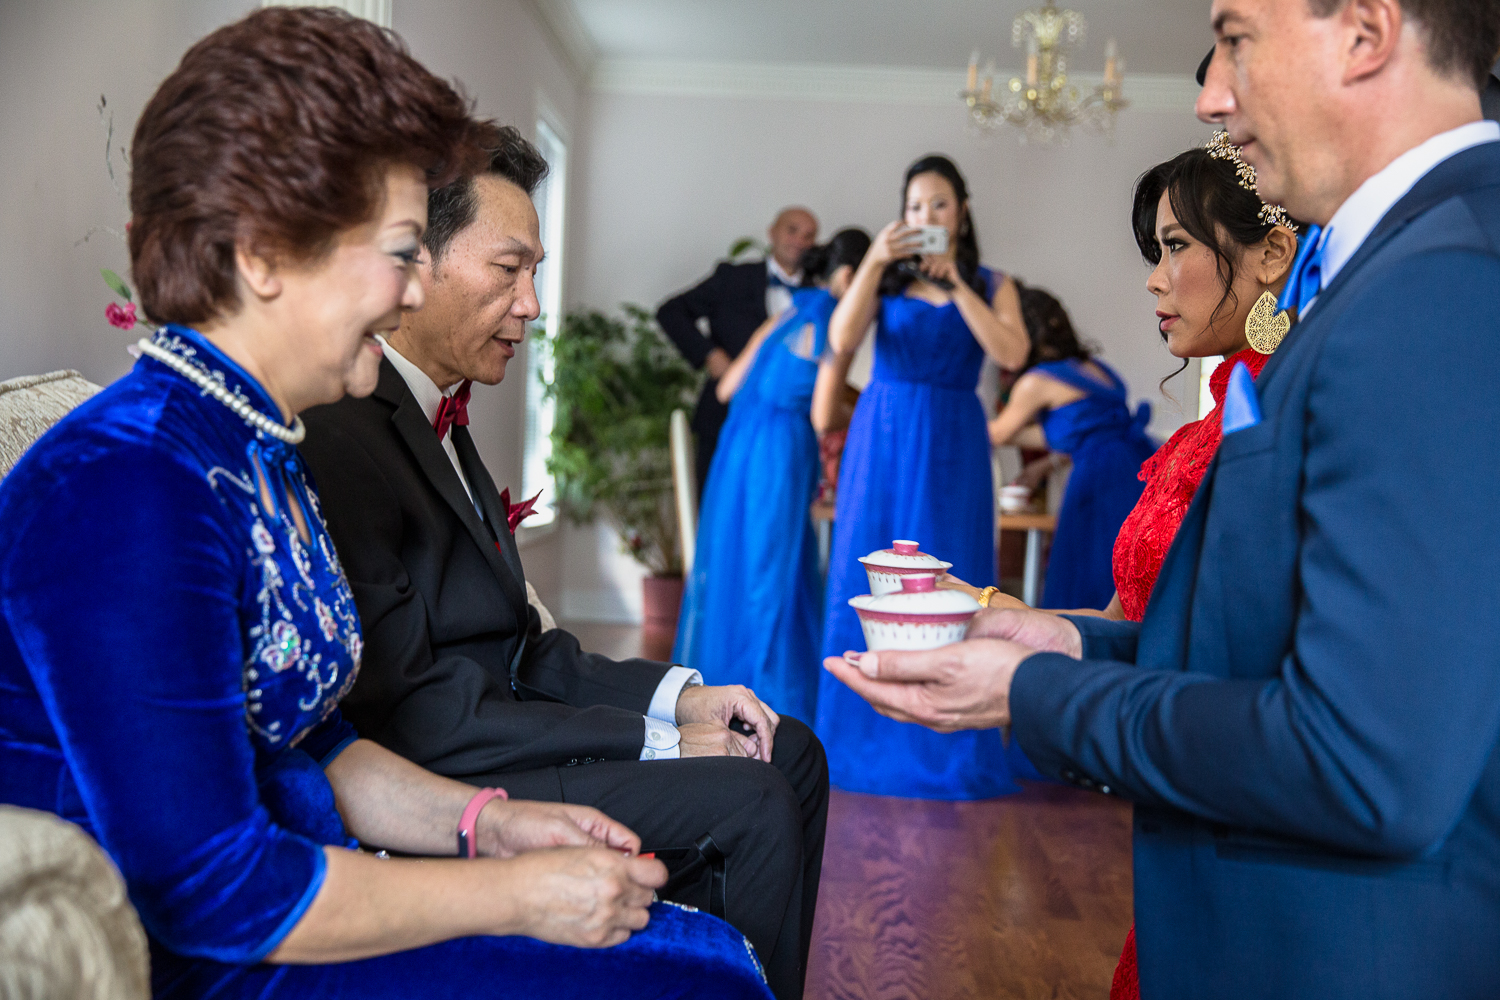 Doug-Karen-Wedding-Derrel-Ho-Shing-Photography-Toronto-Ontatio-0026.jpg